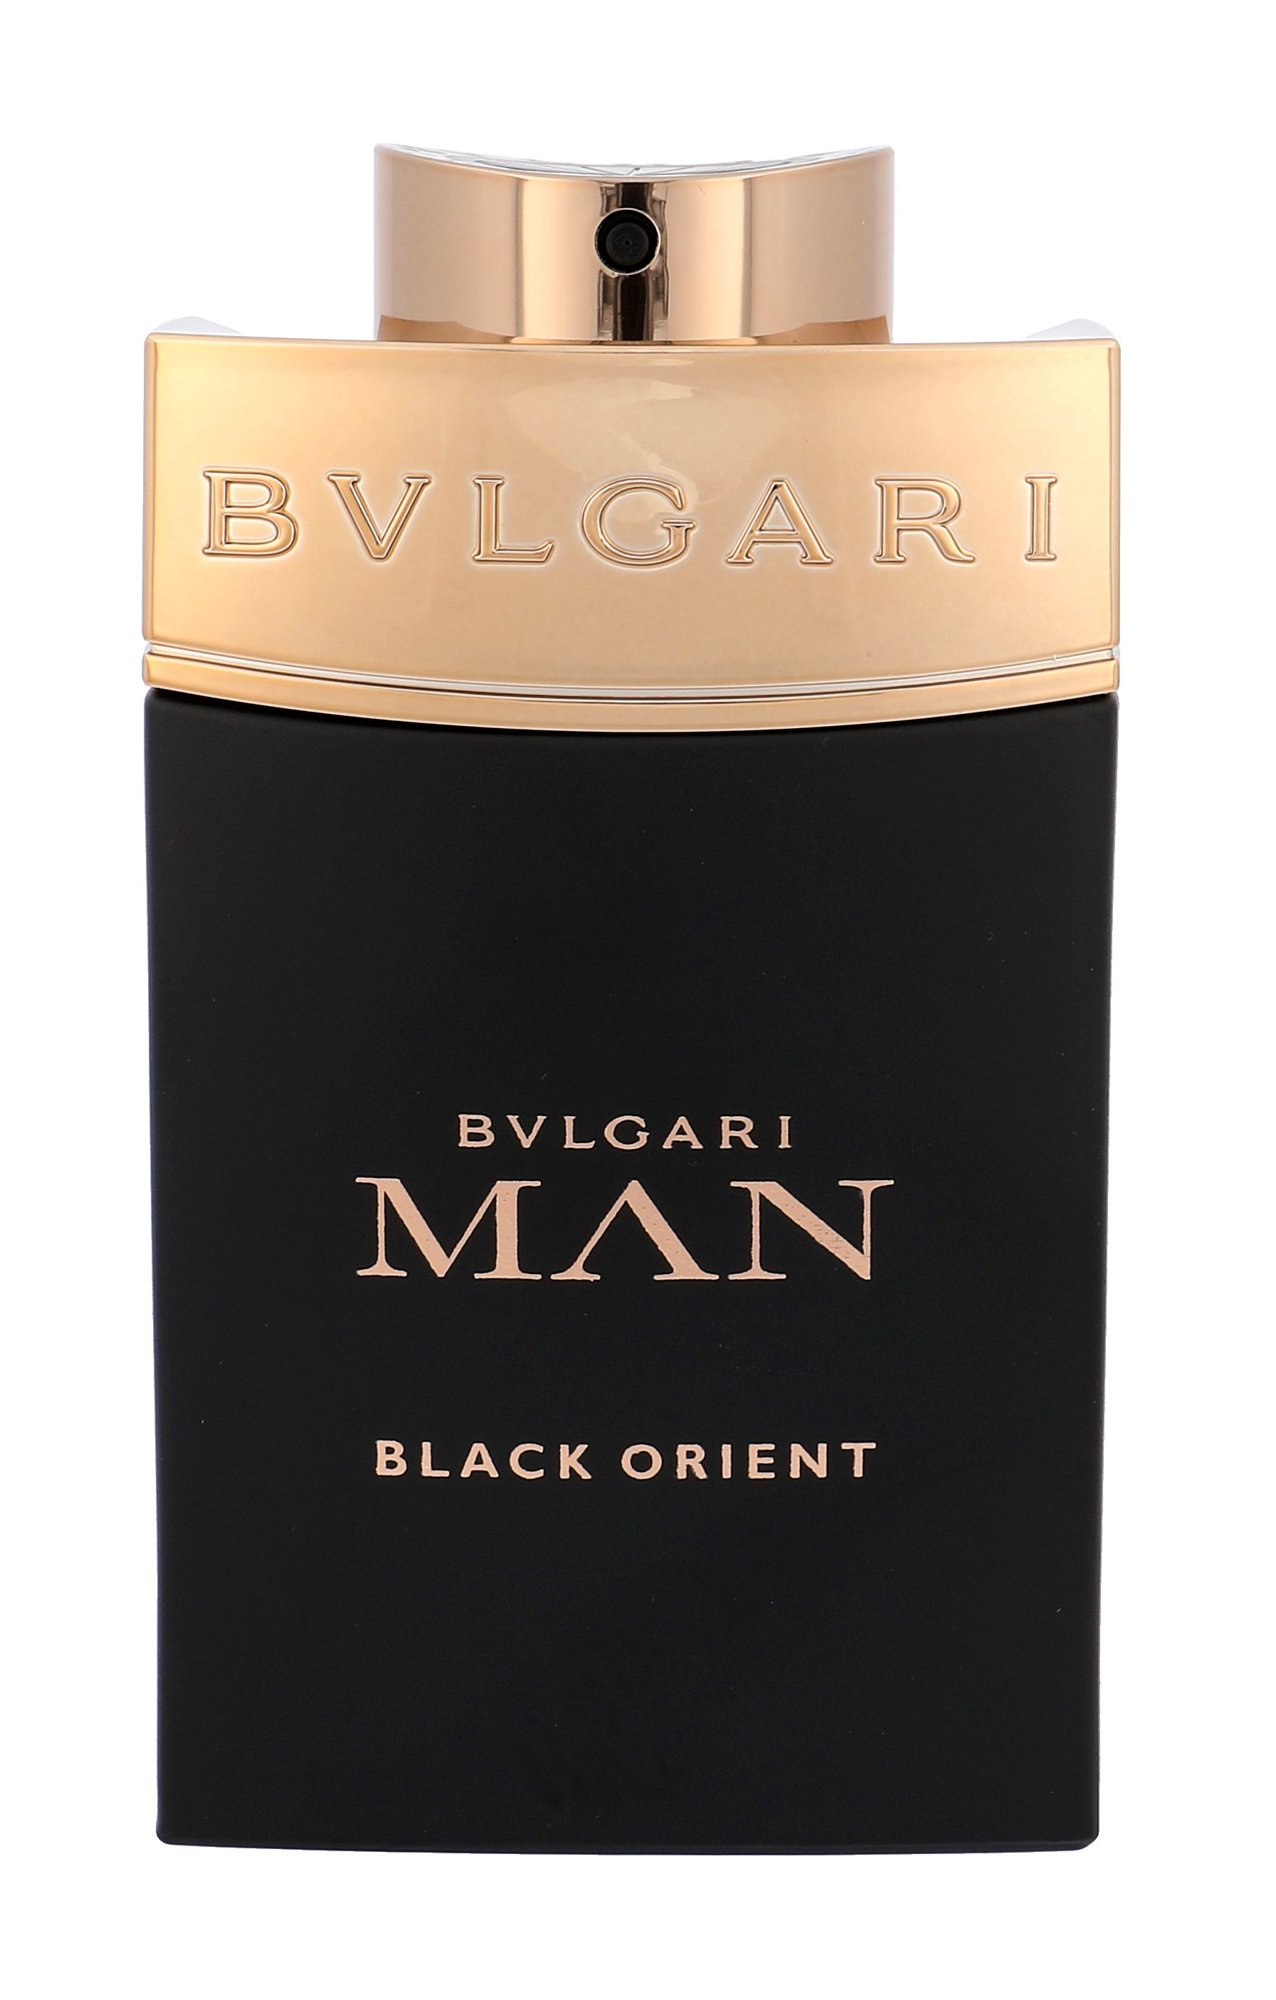 Bvlgari Man Black Orient Parfem 100ml